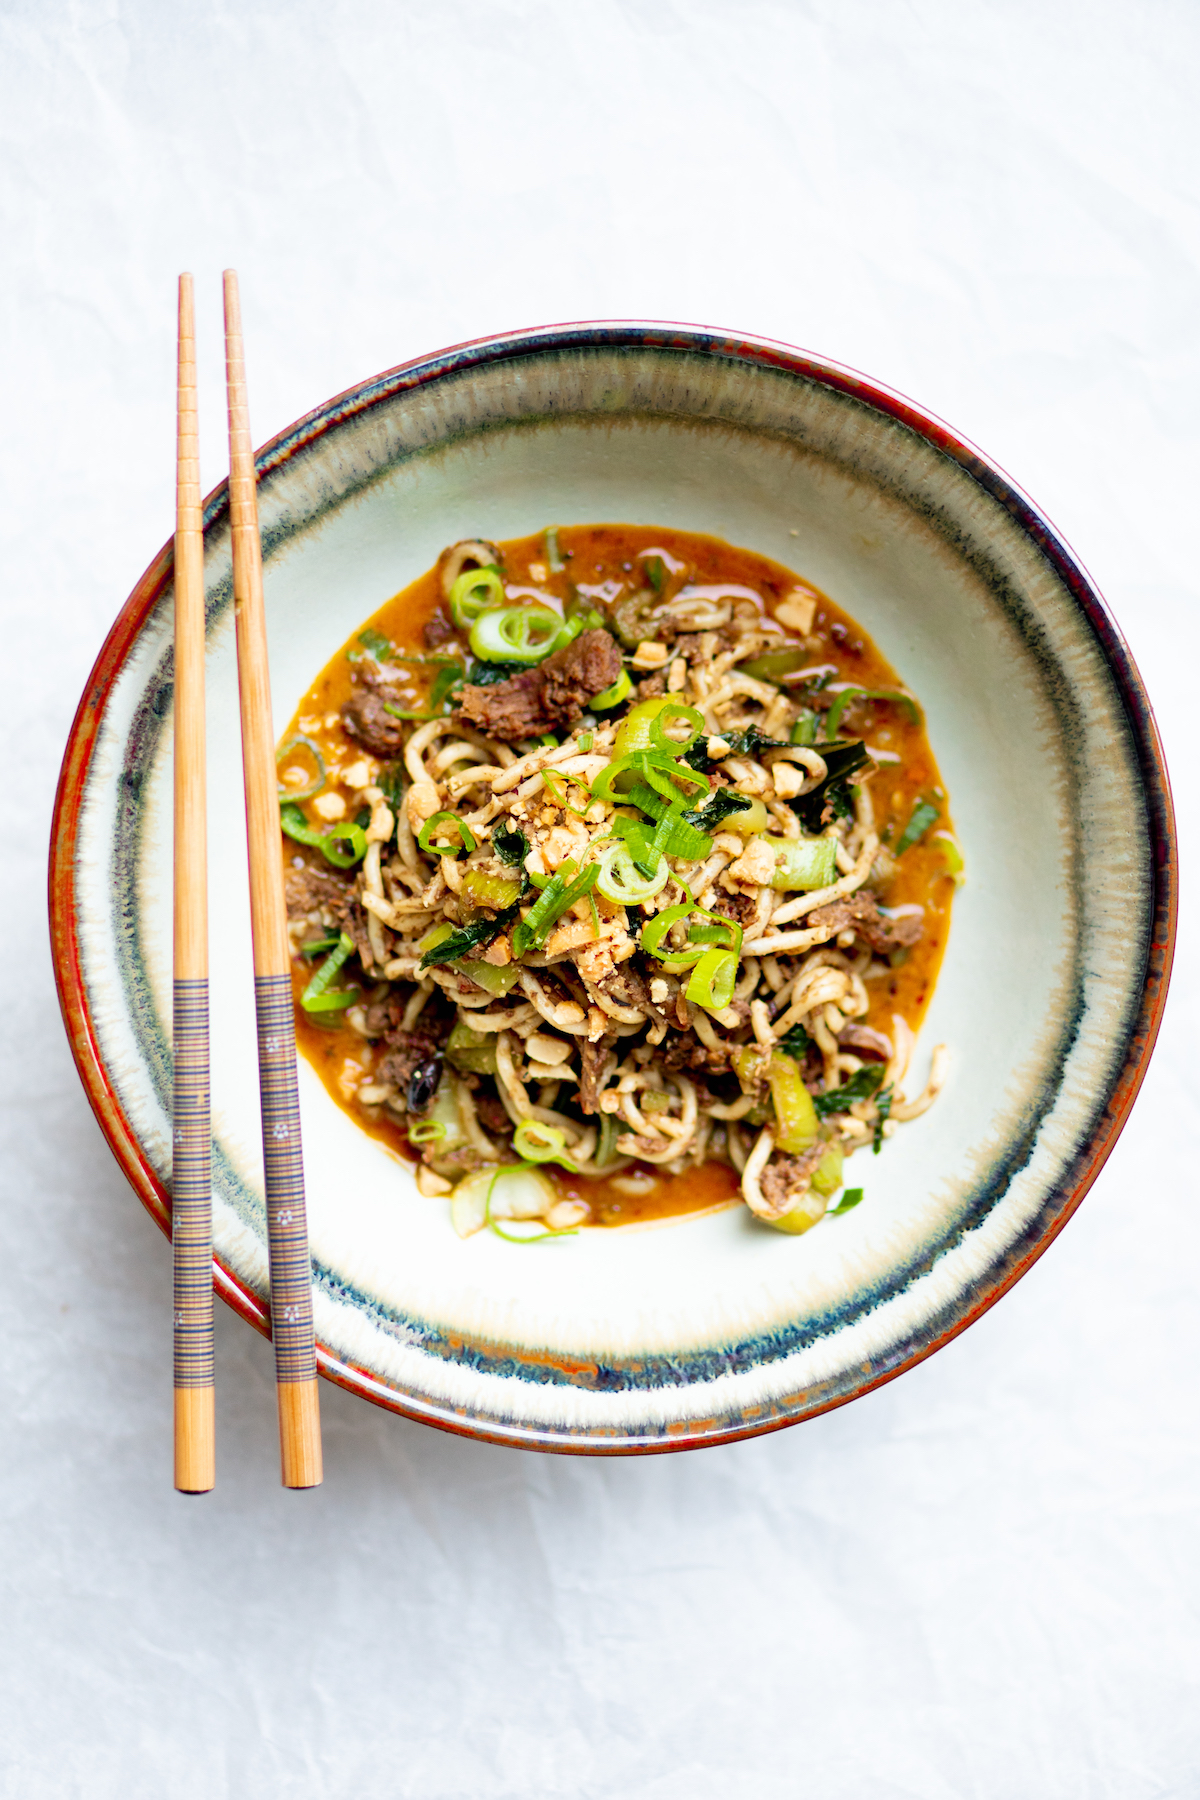 dan dan noodles pulled oats